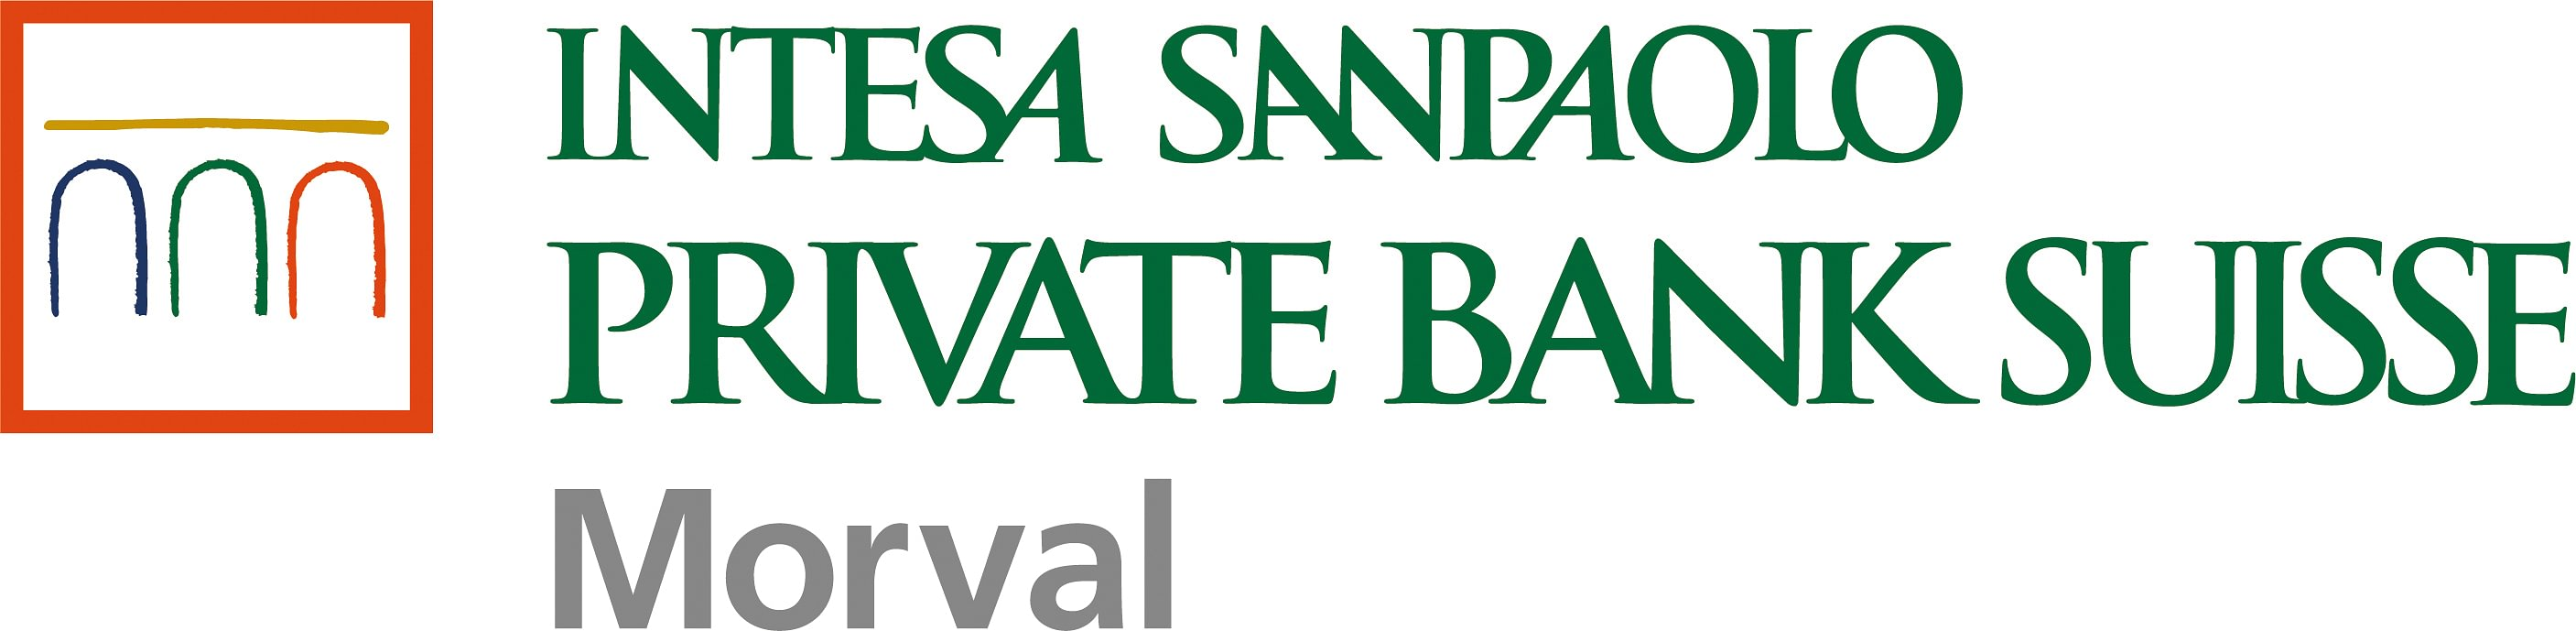 Intesa Sanpaolo Private Bank (Suisse) Morval SA